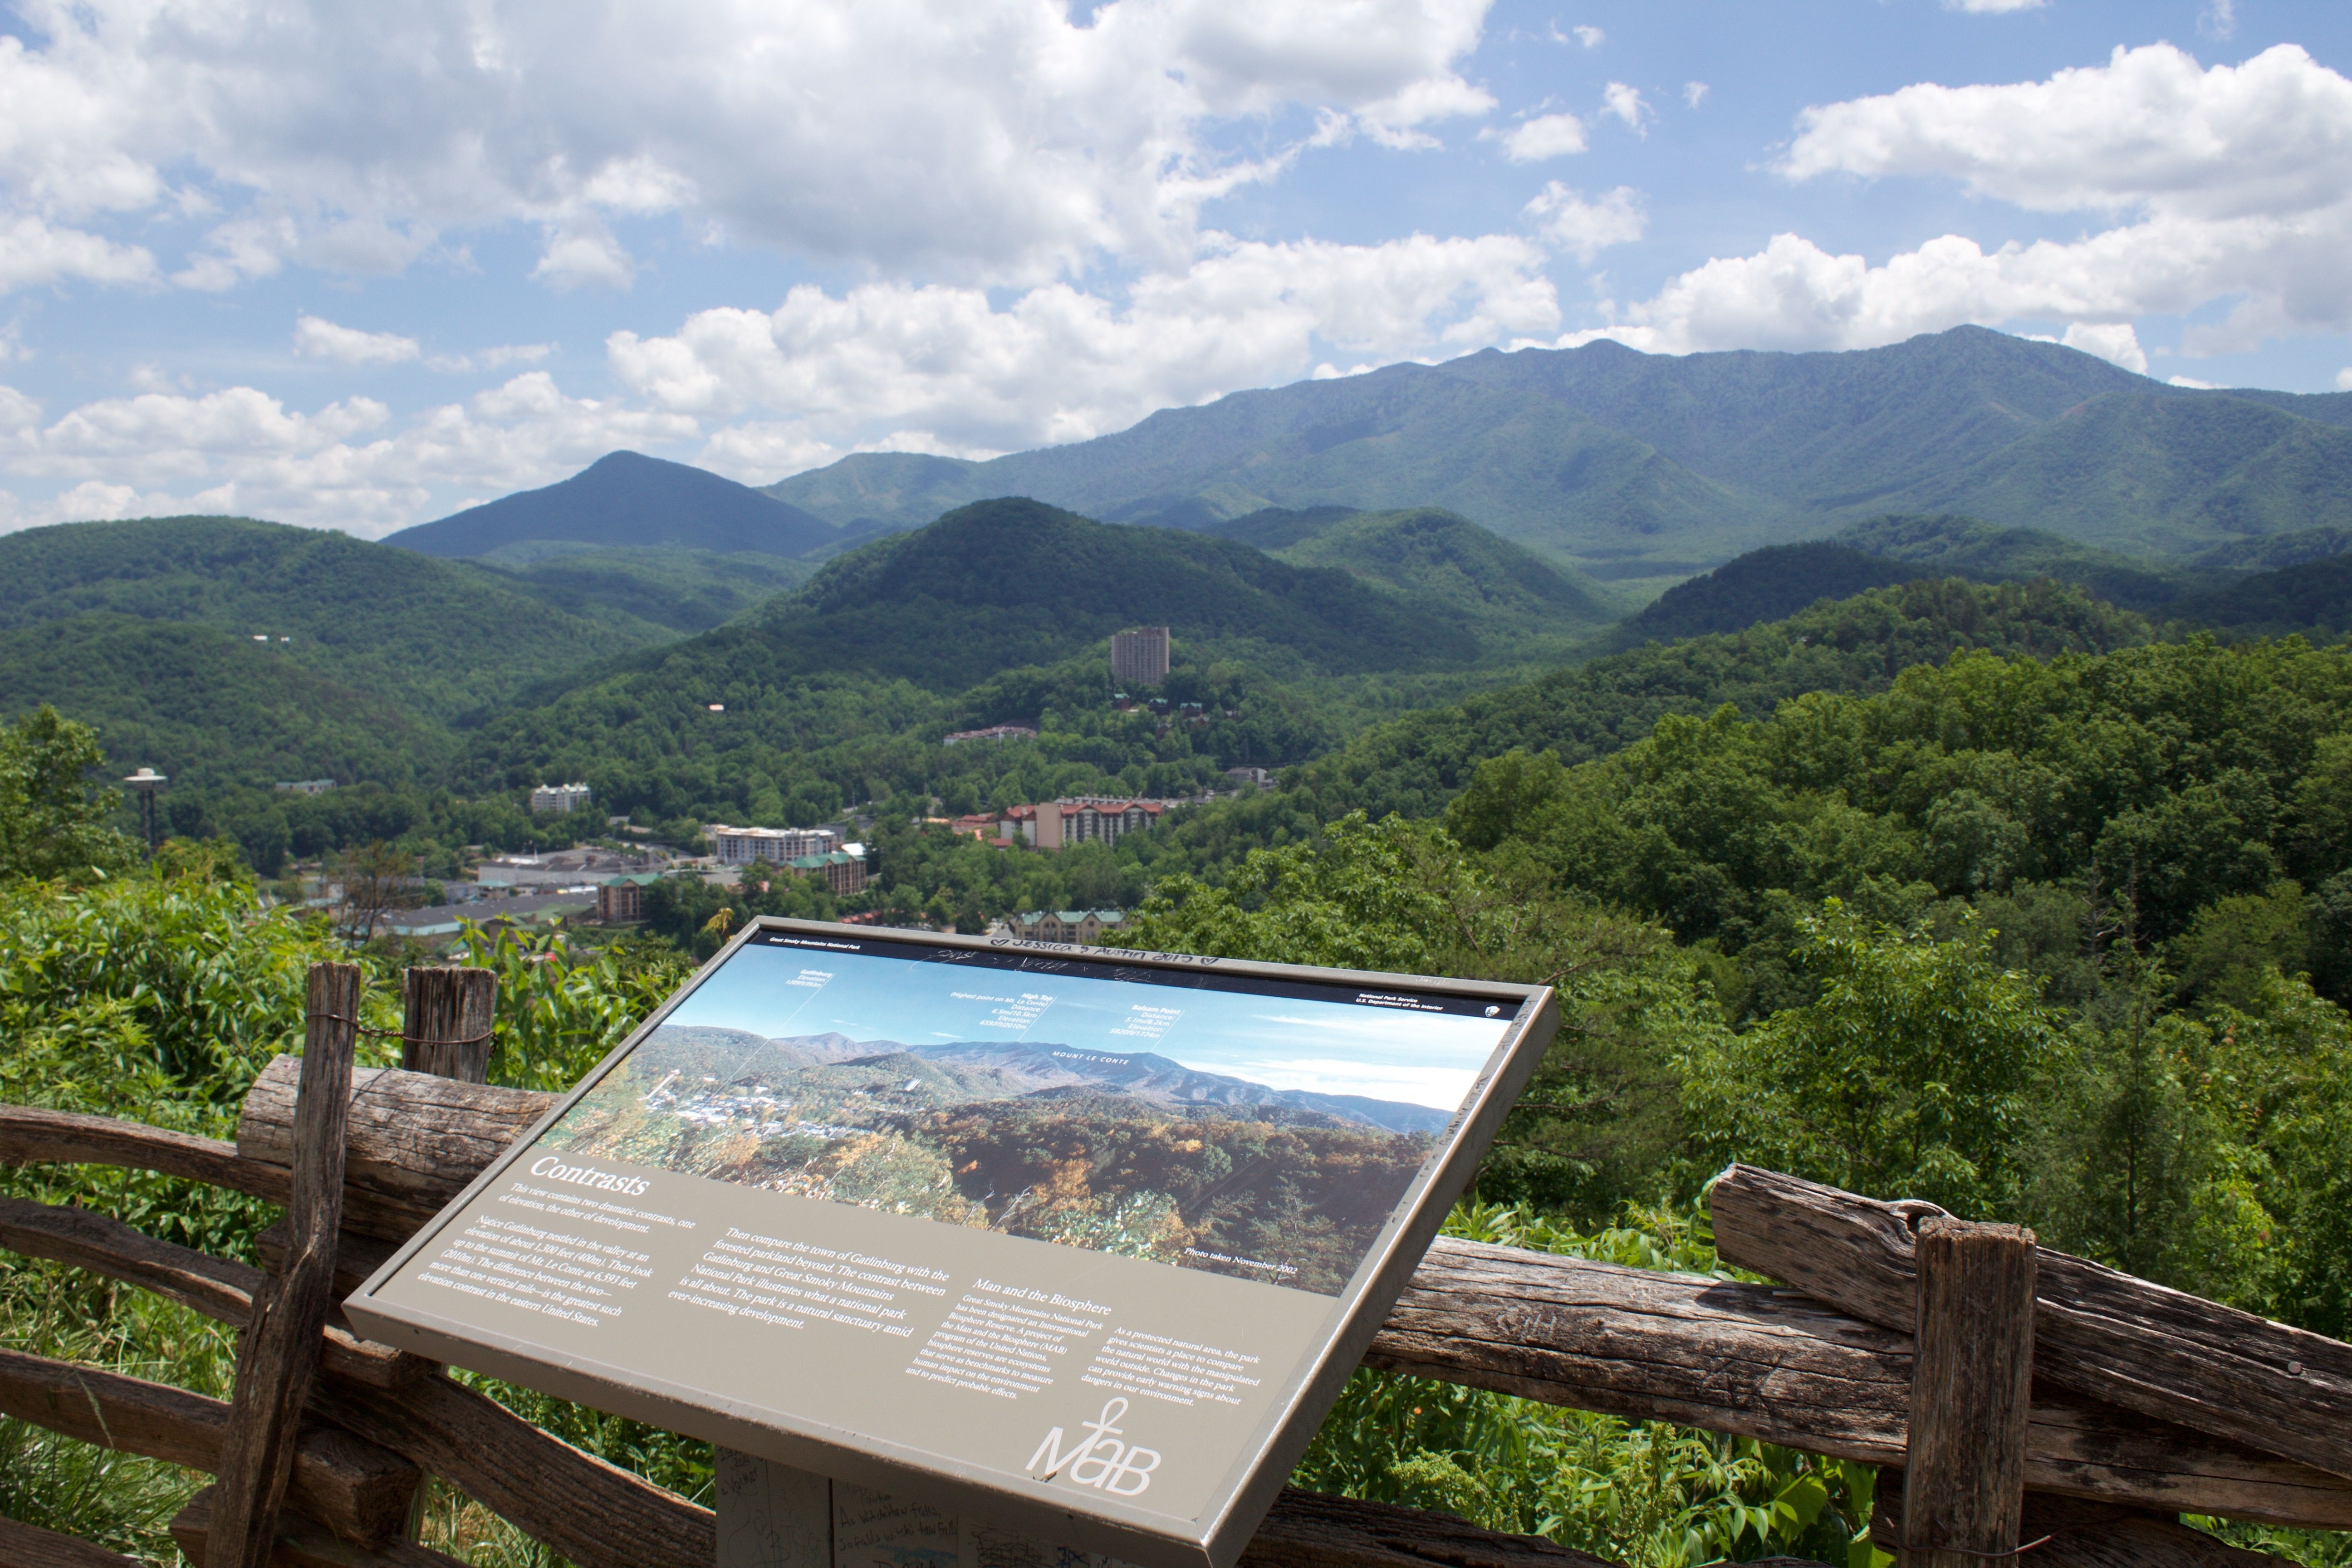 The landscape views in the Great Smoky Mountains are quite the contrast to the city life. #gatlinburg